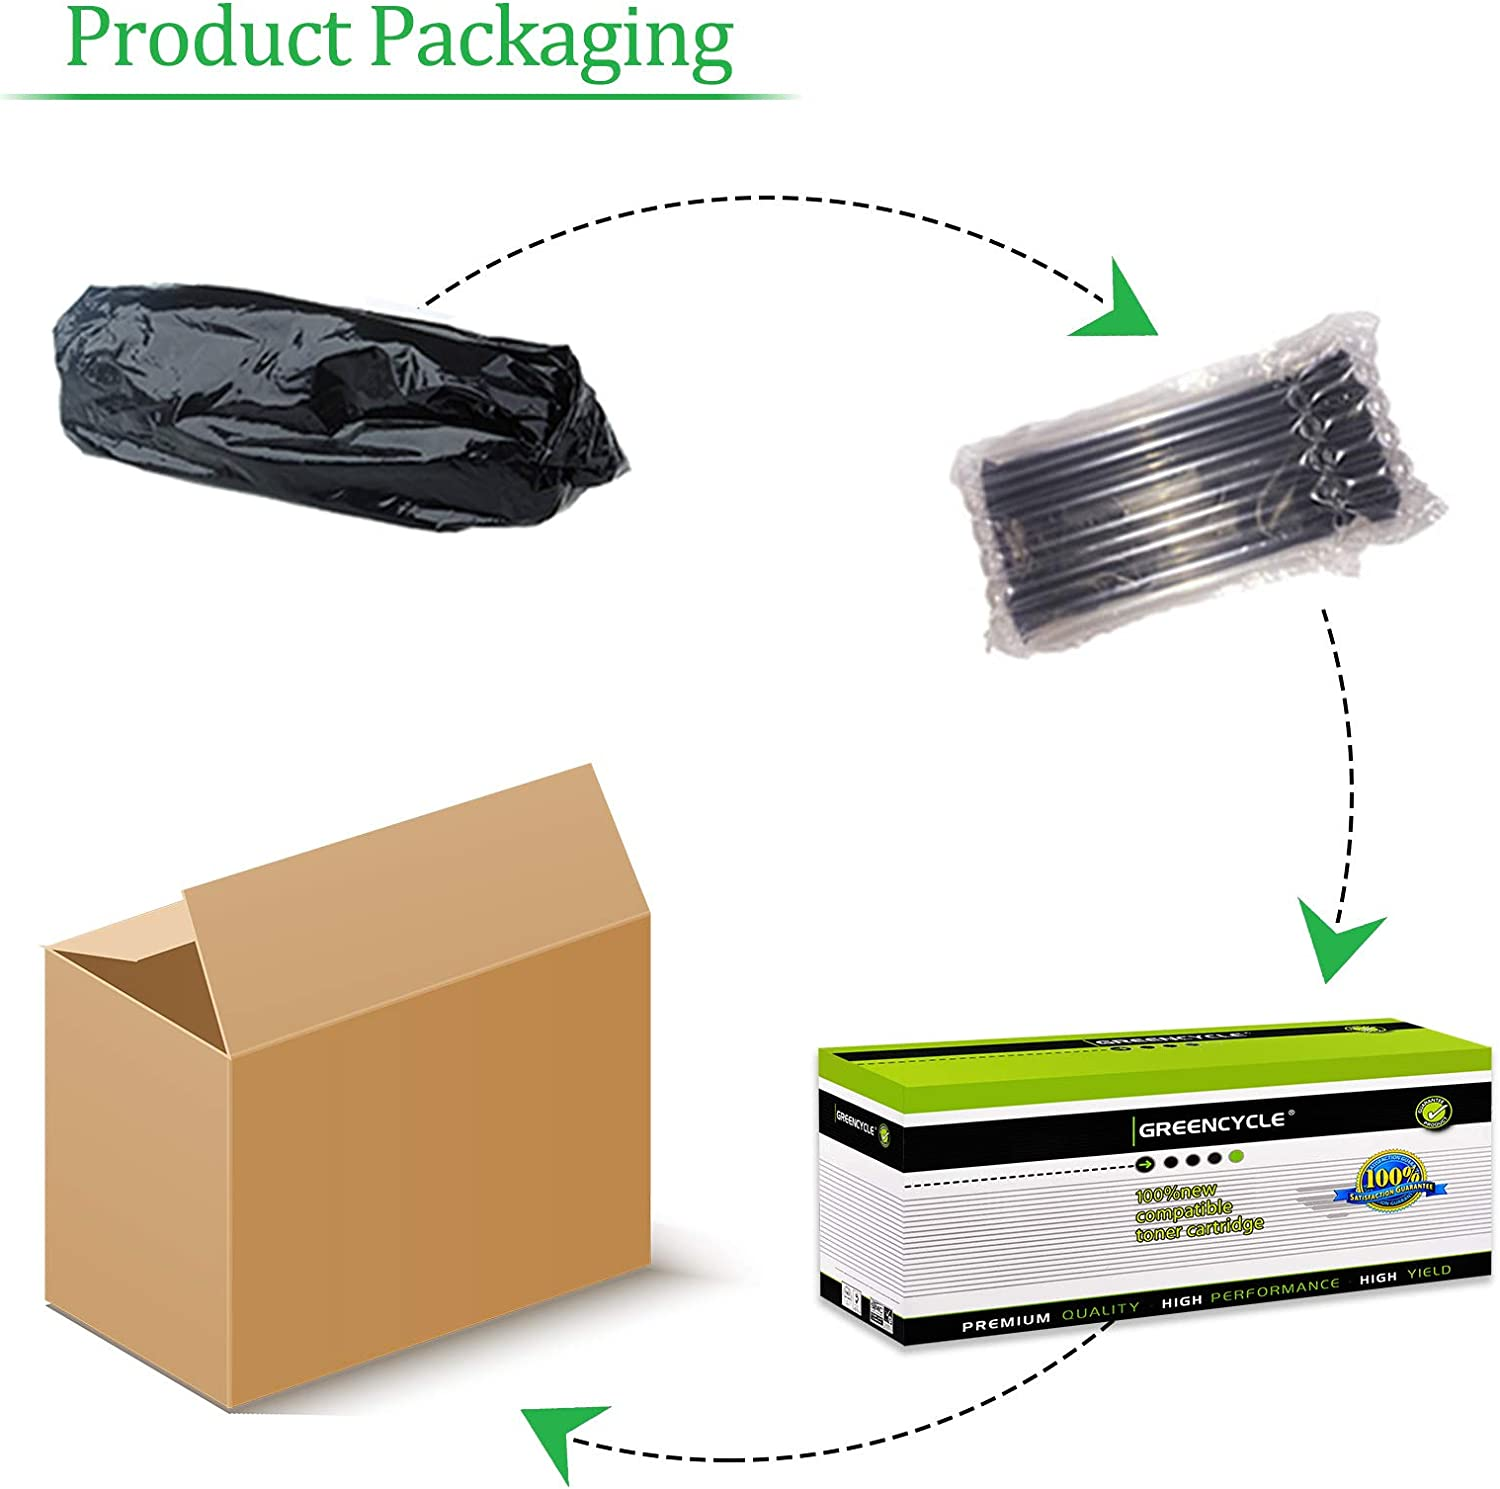 GREENCYCLE 2 Pack Black Compatible Drum Unit Replacement for Brother DR1000 DR-1000 use in DCP-1510 HL-1110 HL-1112 HL-1210W MFC-1810 MFC-1910W Printer